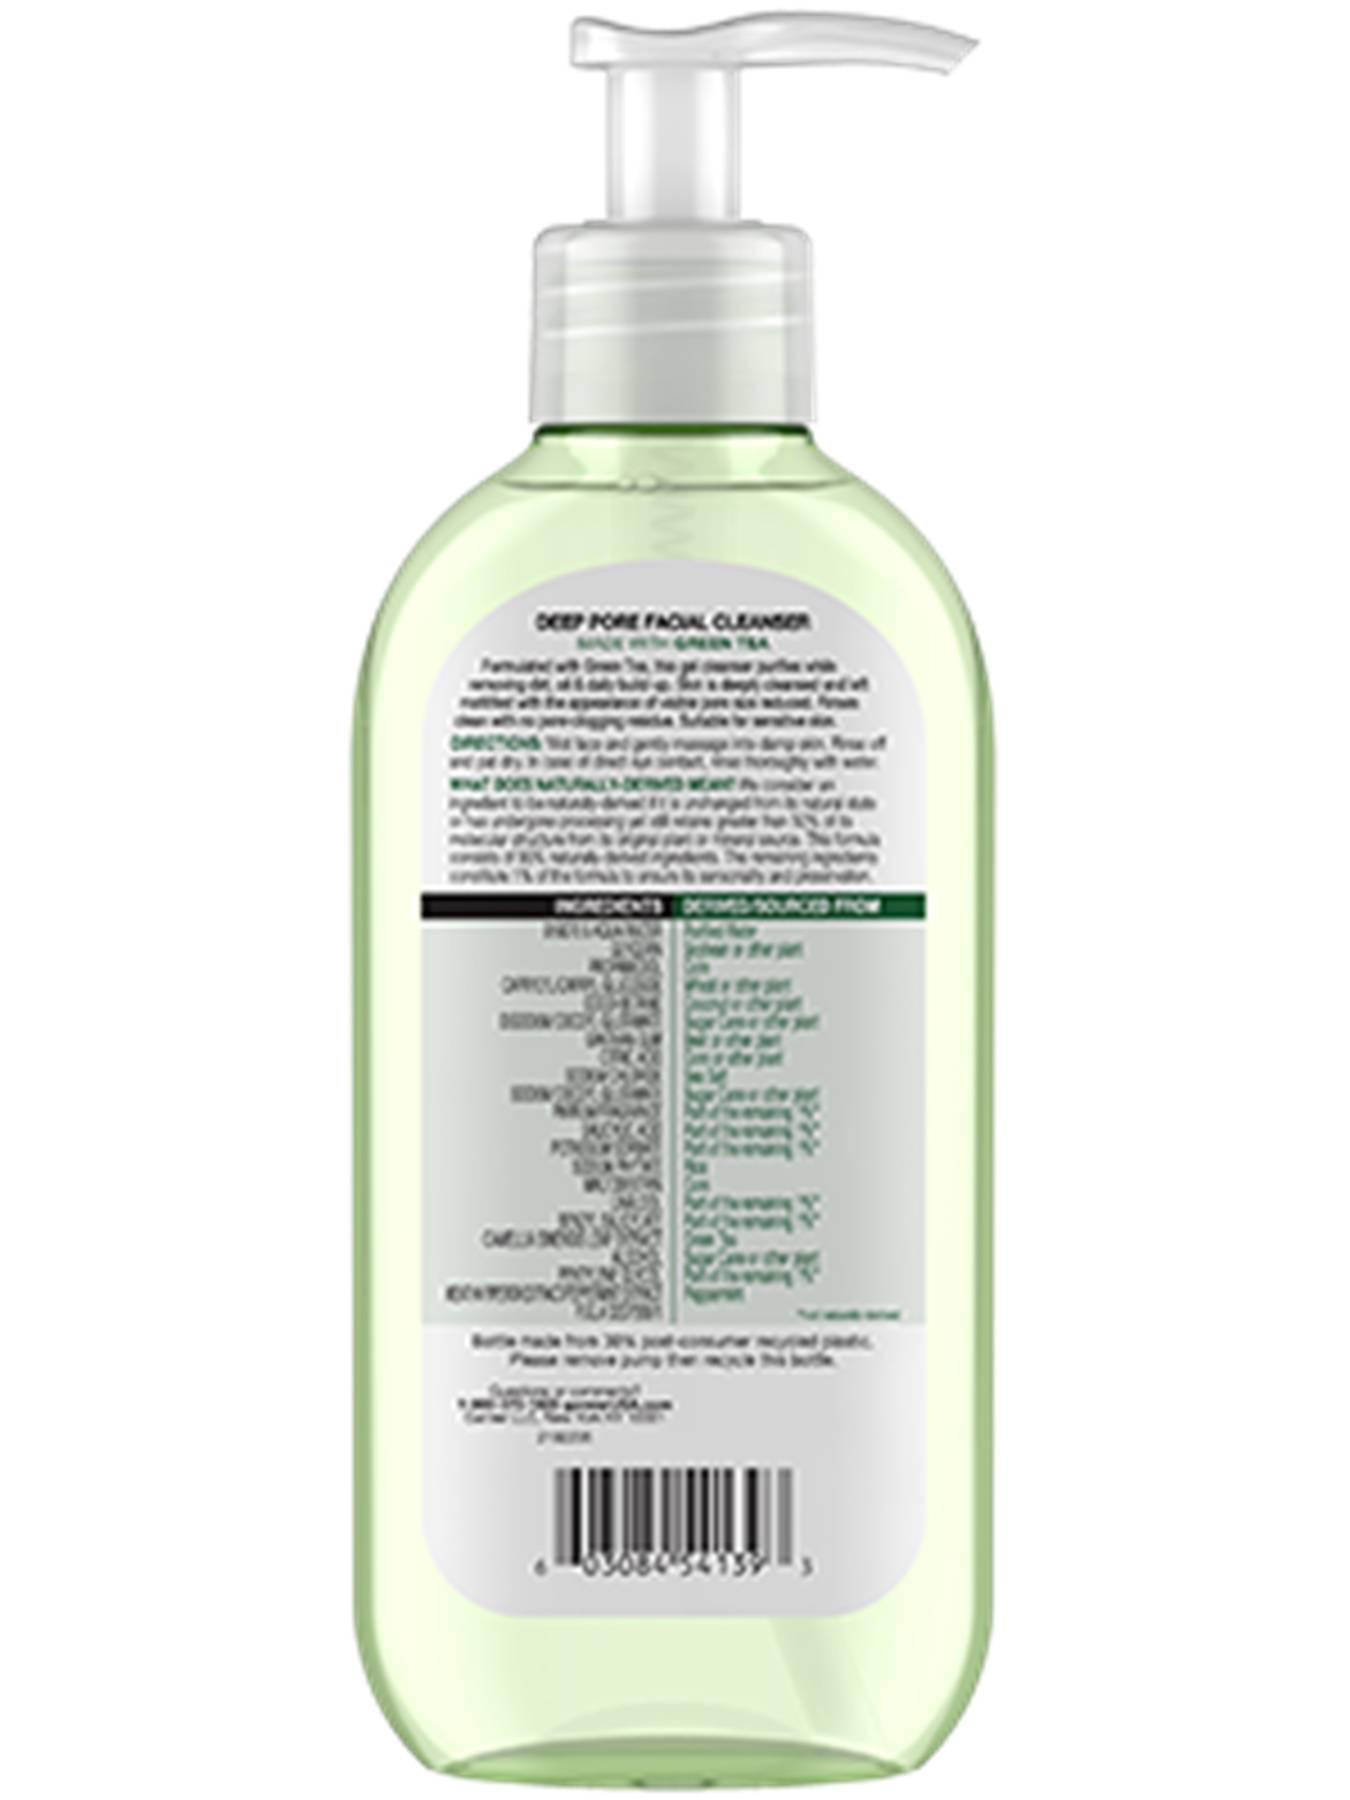 Garnier SkinActive Deep Pore Face Wash with Green Tea - Purifies skin while removing dirt, oil, and daily buildup